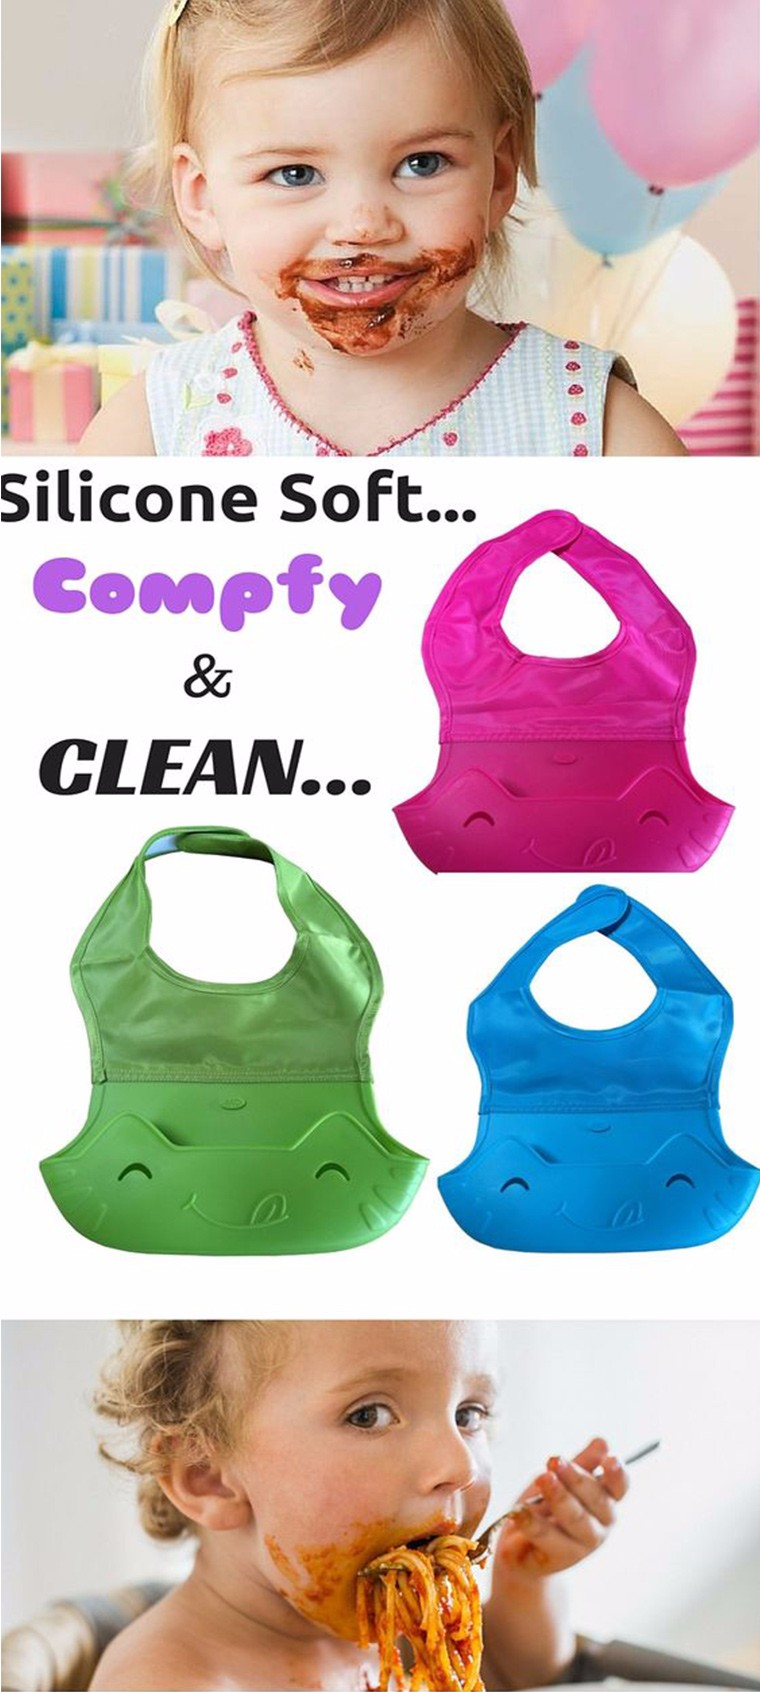 Waterproof silicone baby bib,baby silicone bibs wholesale